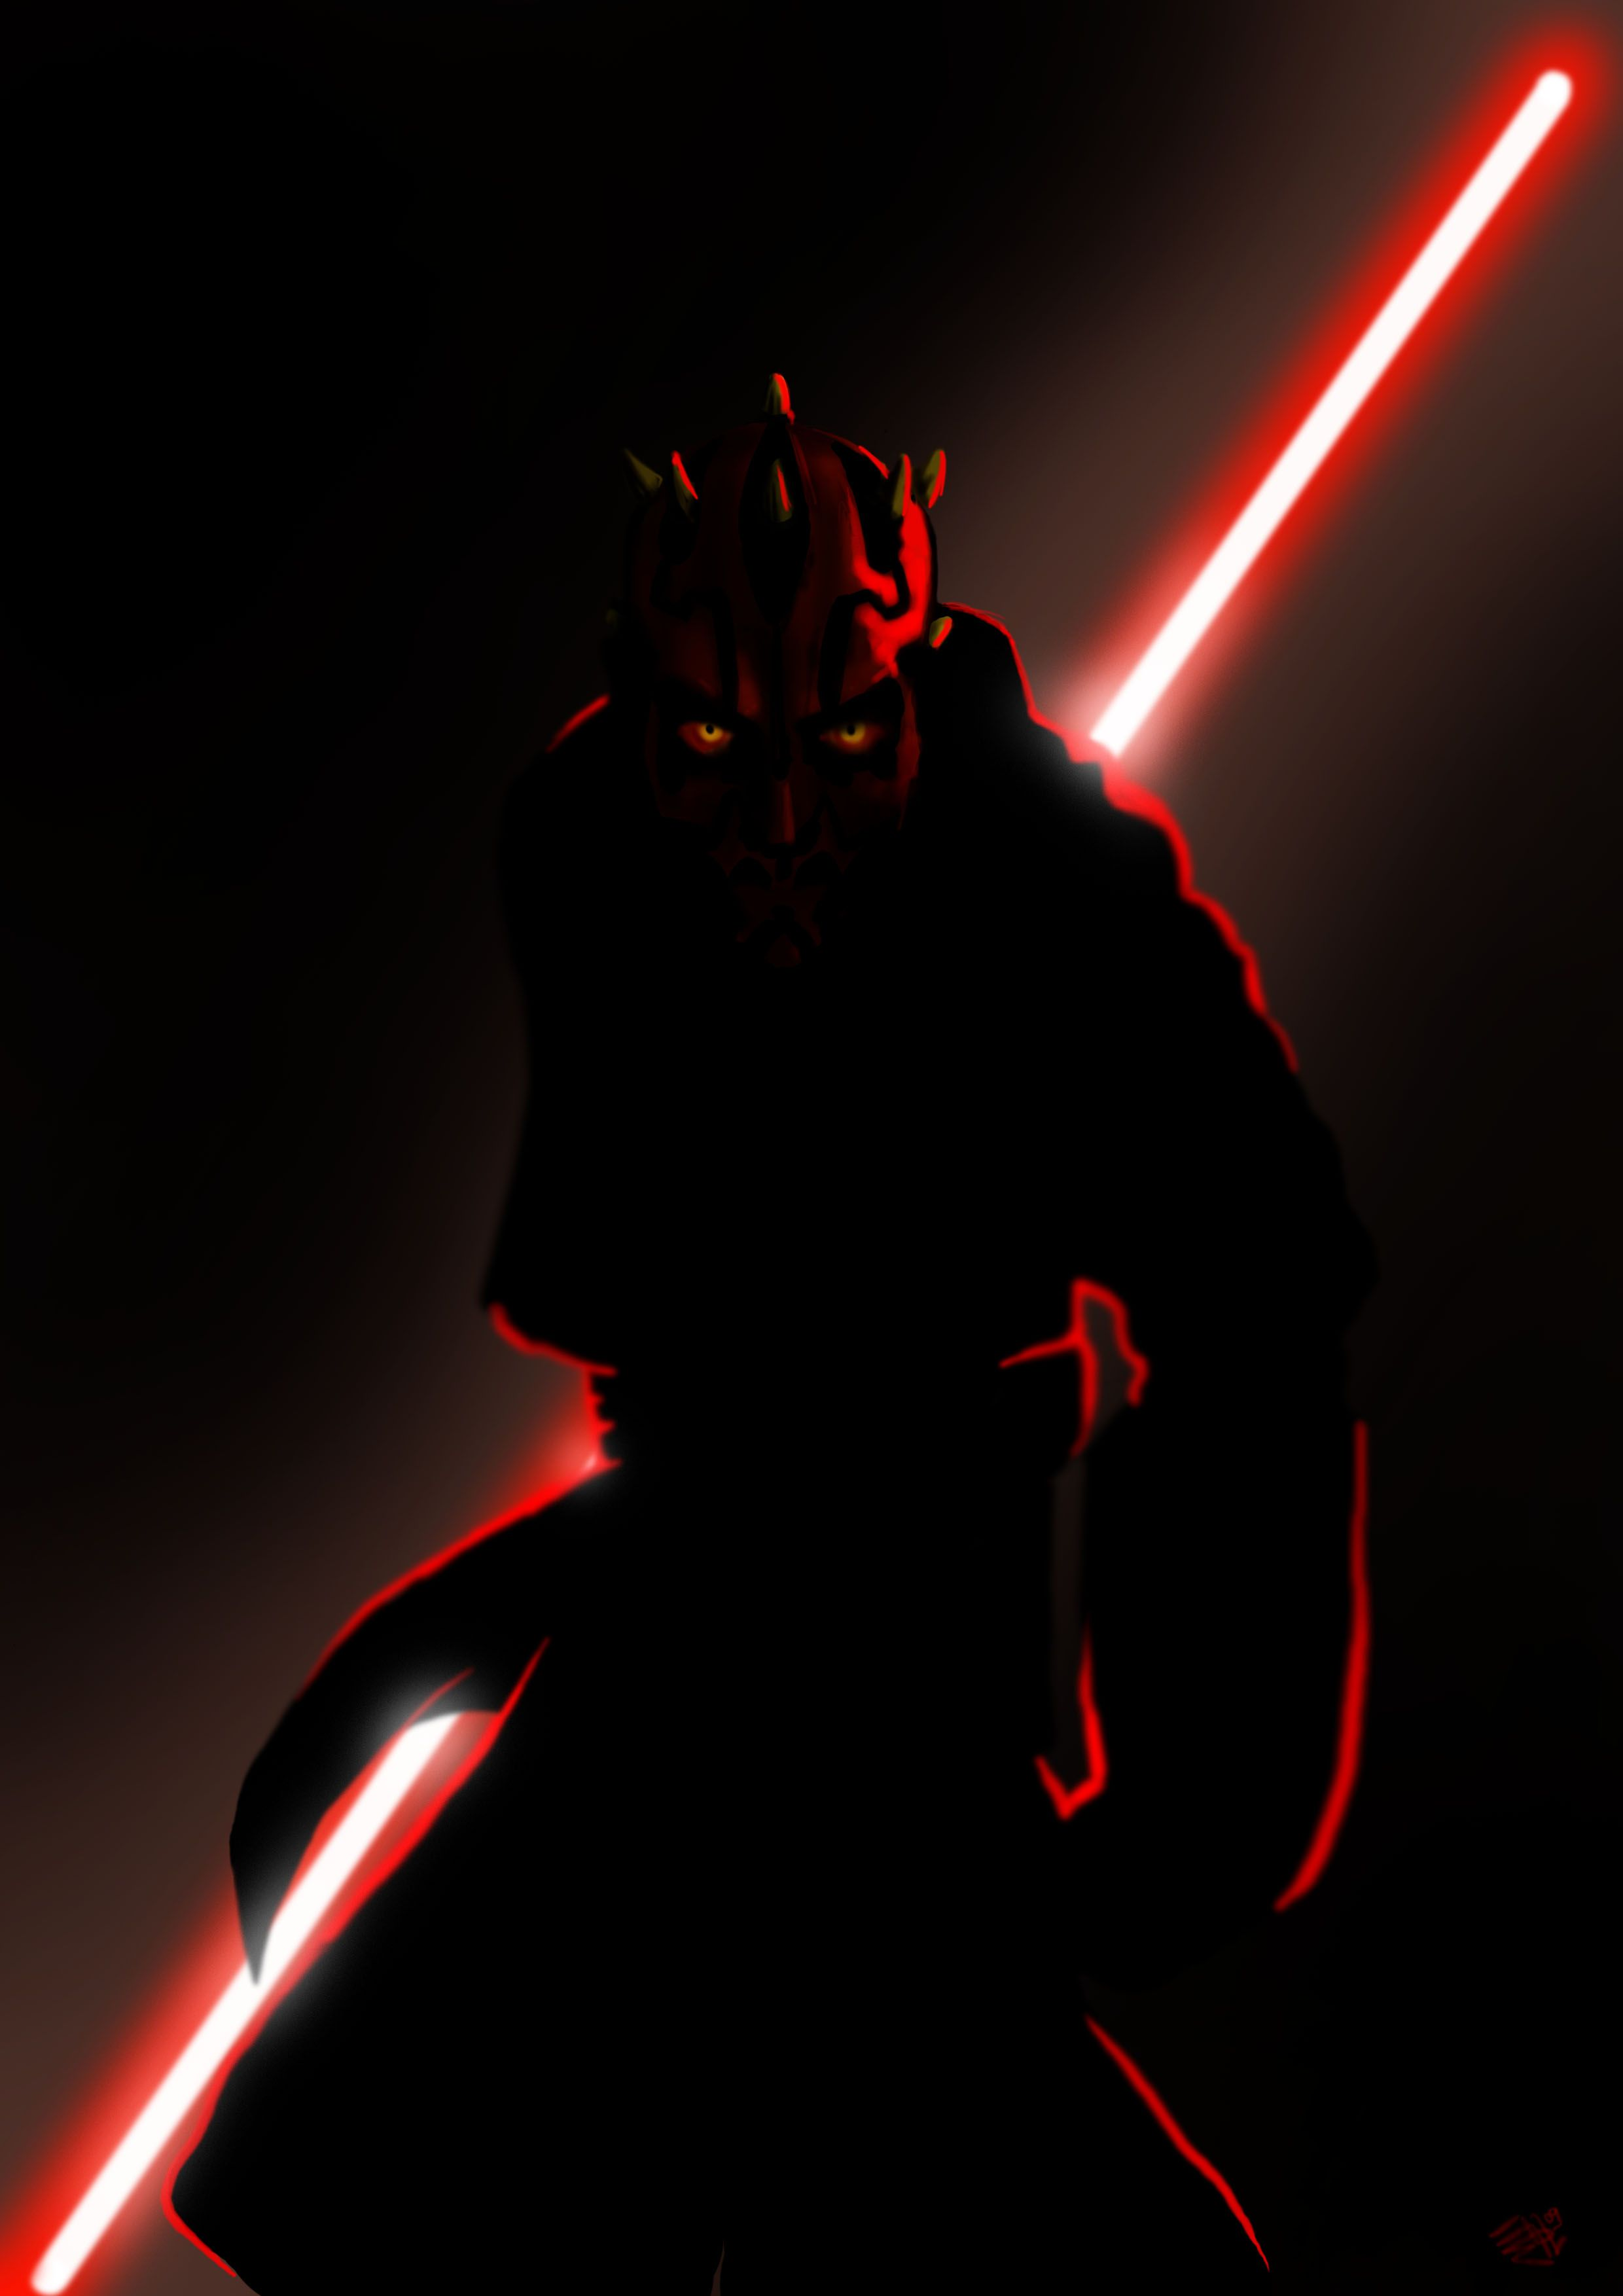 Sith Star Wars Iphone Wallpapers Top Free Sith Star Wars Iphone